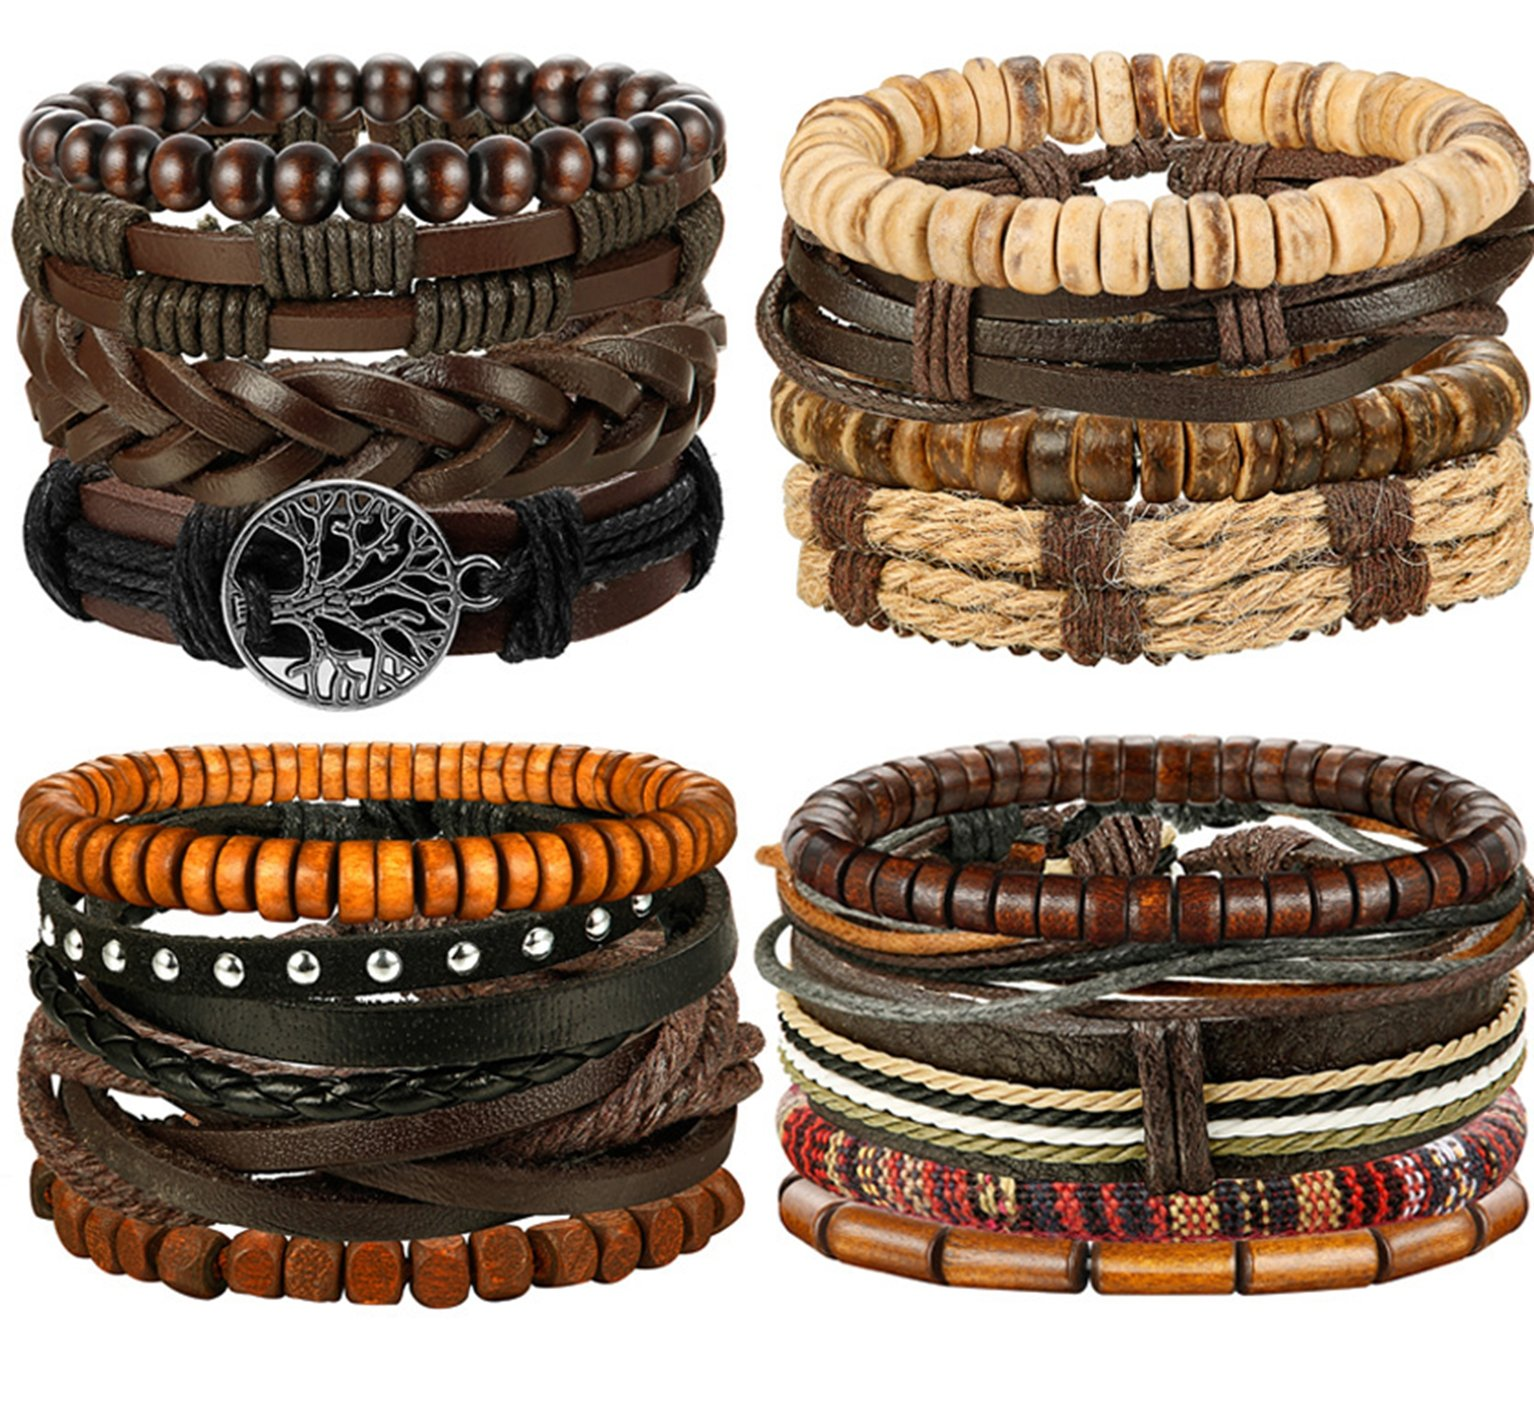 FIBO STEEL 17 Pcs Leather Bracelet for Men Women Woven Cuff Bracelet Adjustable